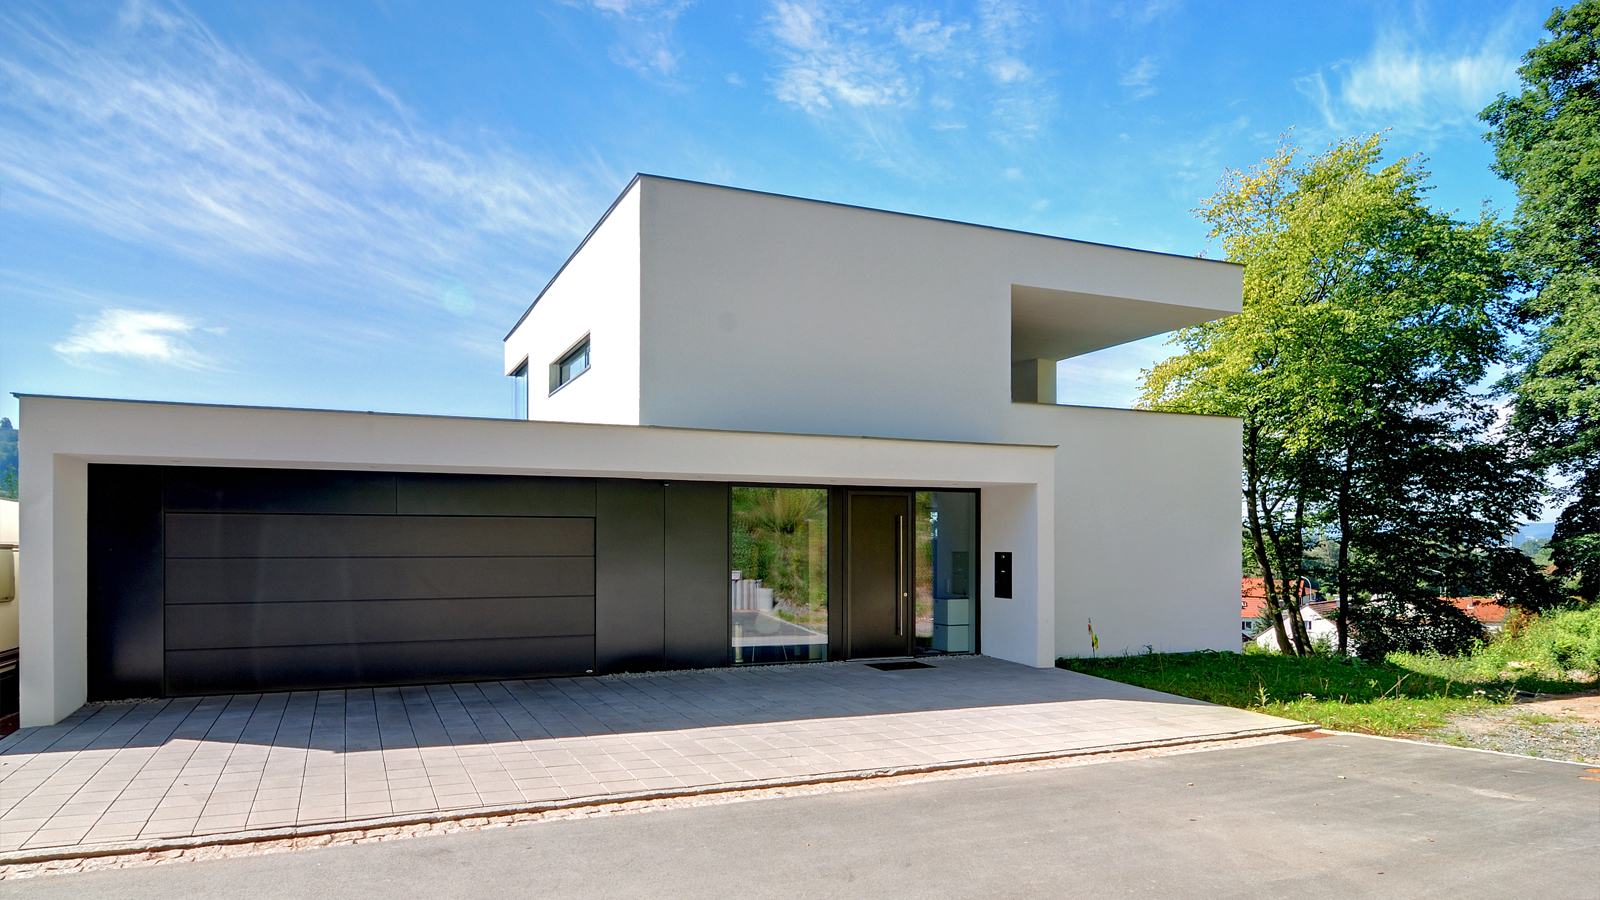 B3 kubus am hang h2m architekten ingenieure for Haus architektur